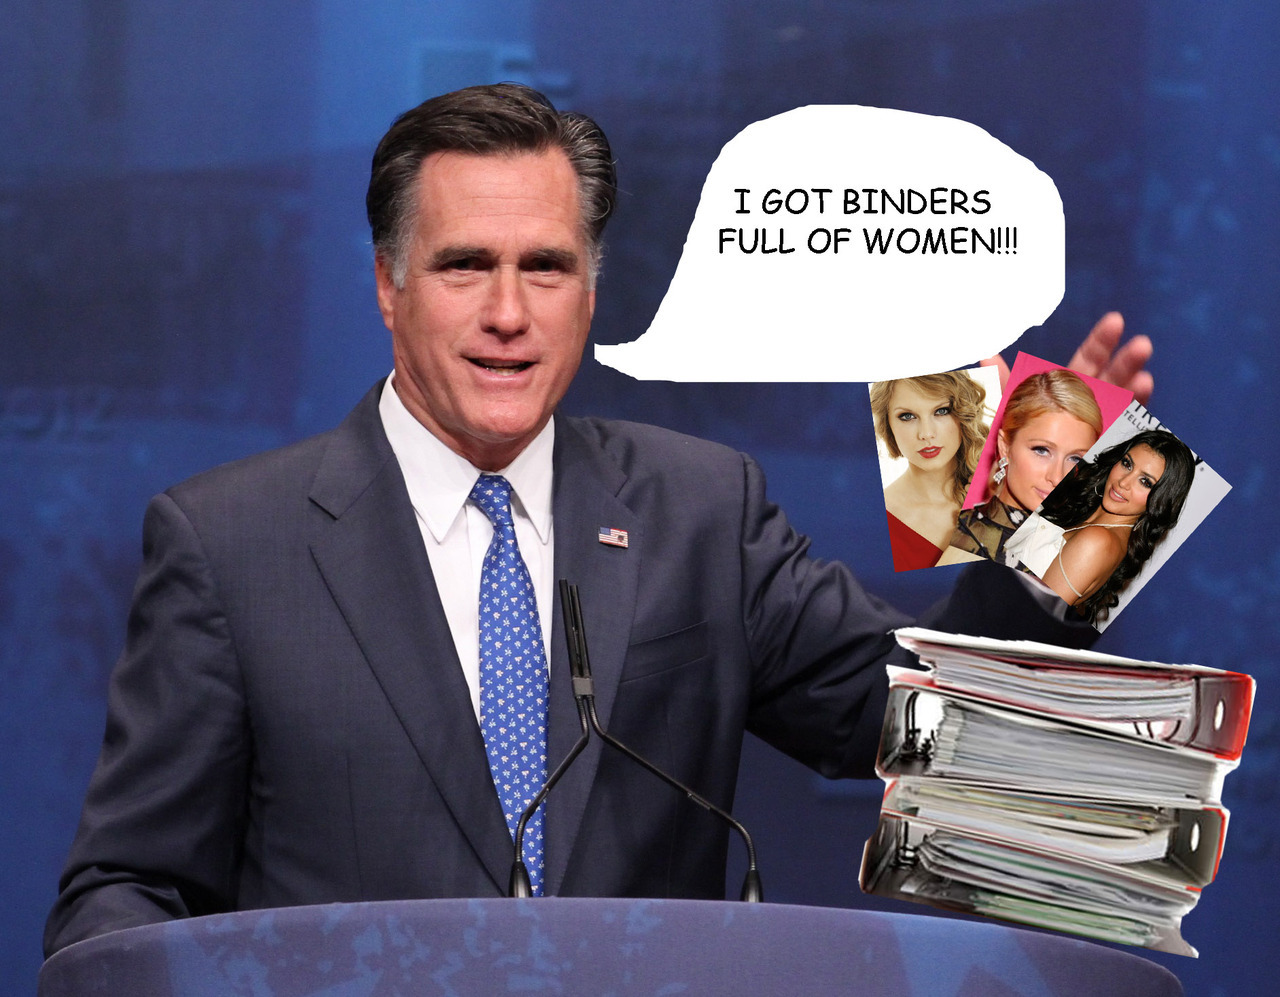 Binders. Full. Of. Women. Mittens style.